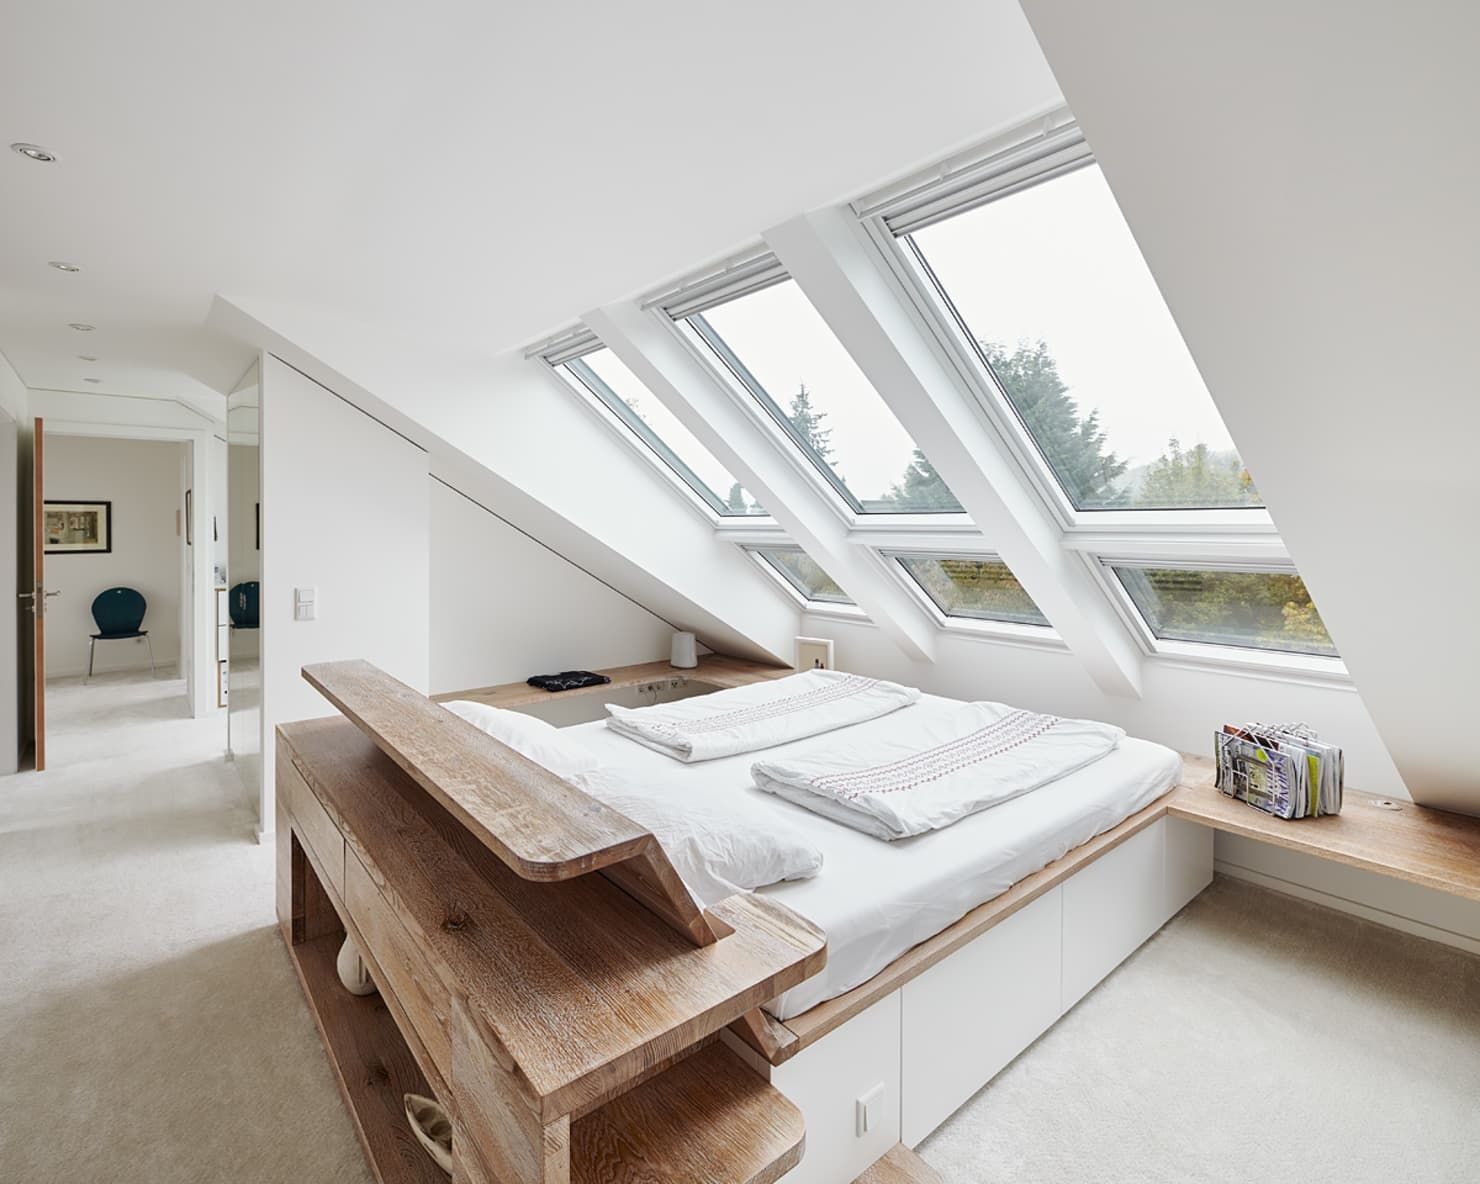 Dachgeschossausbau Ratingen Moderne Schlafzimmer Von Philip Kistner Fotografie Modern Homify In 2020 Home Attic Renovation Attic Master Bedroom